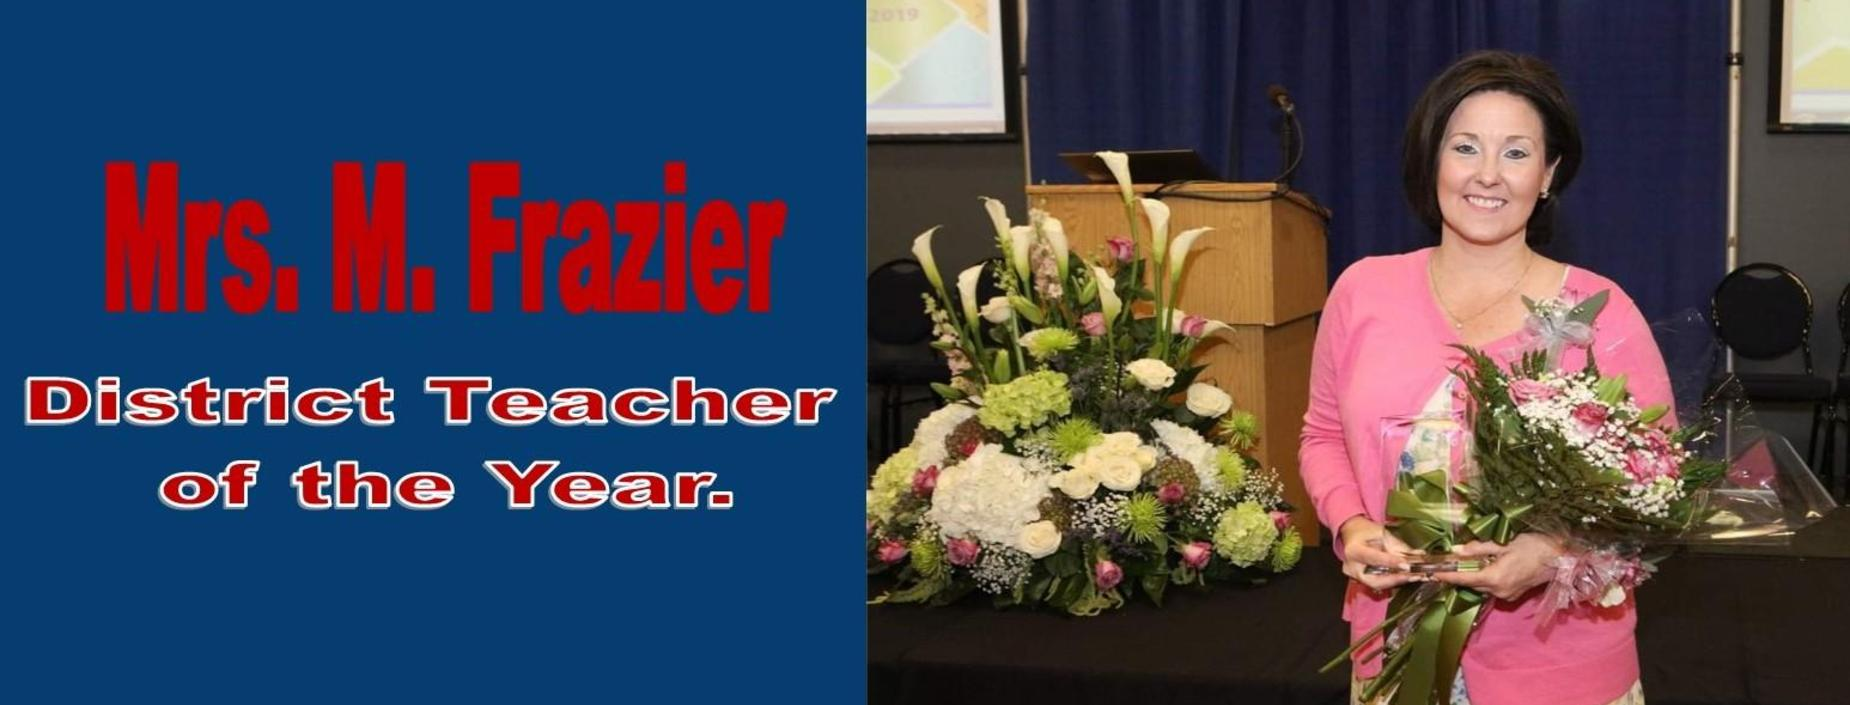 District Teacher of the year, Mrs. Frazier